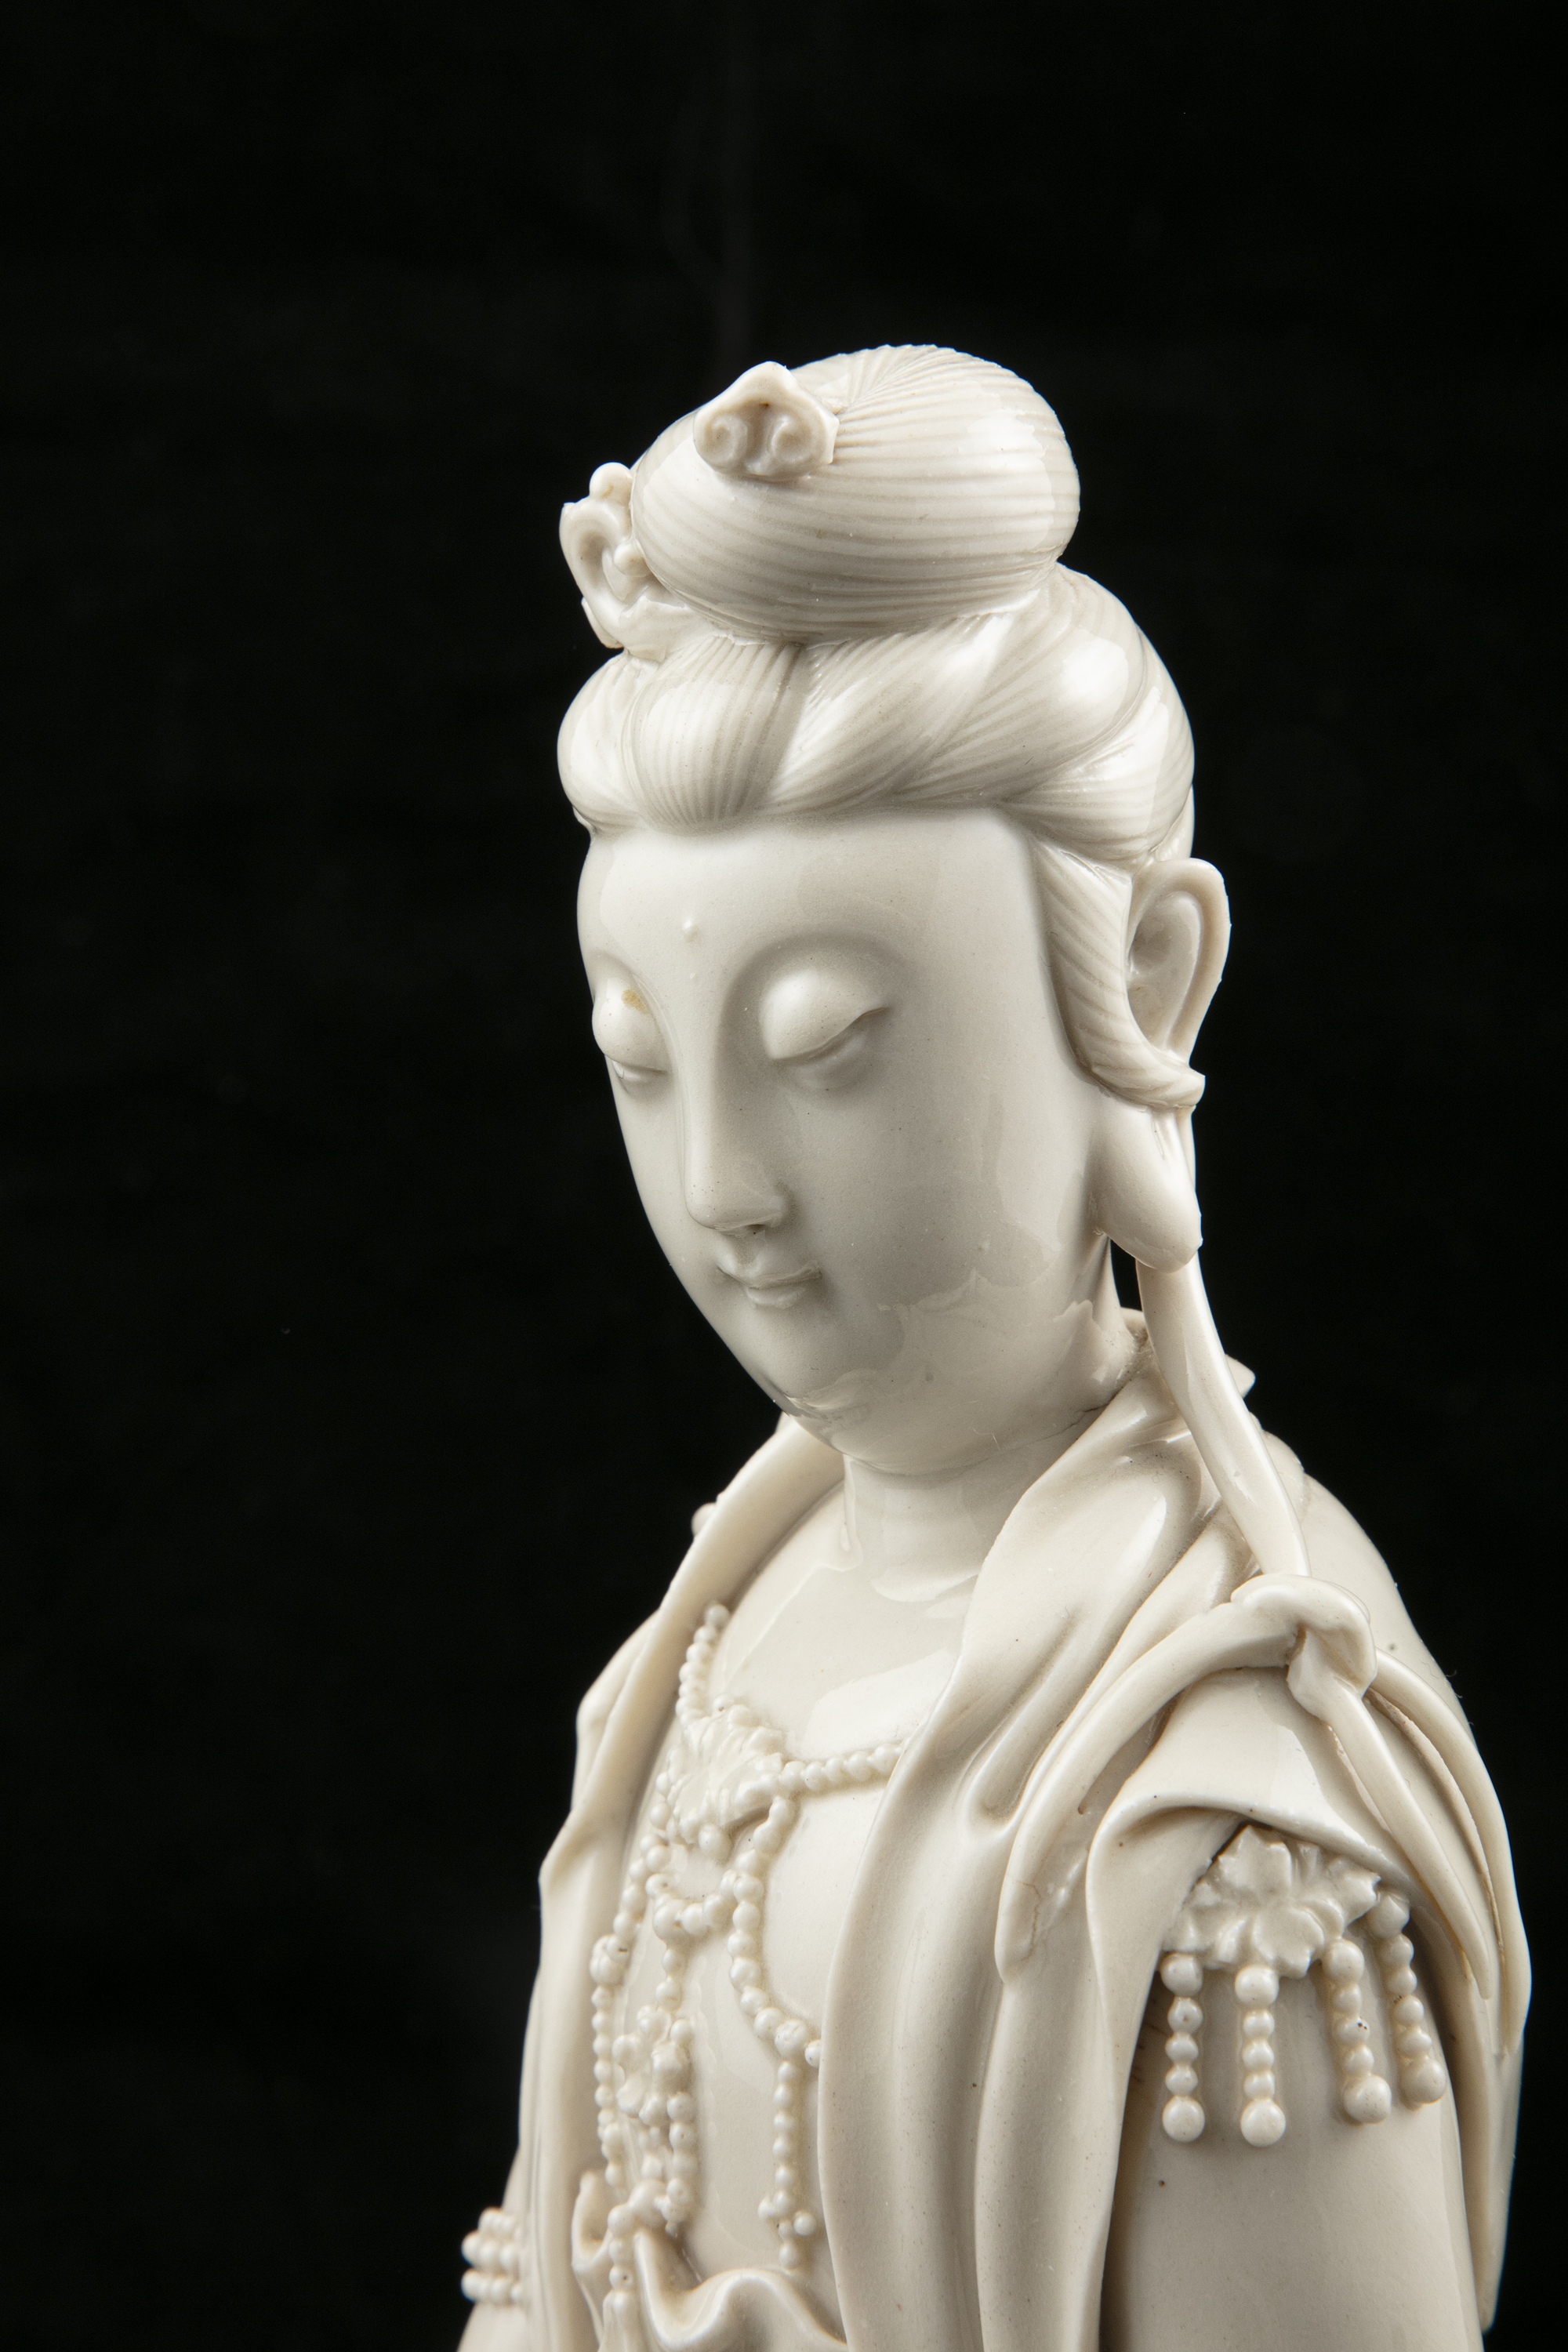 A LARGE DEHUA FIGURE OF A SEATED GUANYIN IMPRESSED WITH A HE CHAOZONG 何朝宗 CALABASH SHAPED SEAL - Image 3 of 48